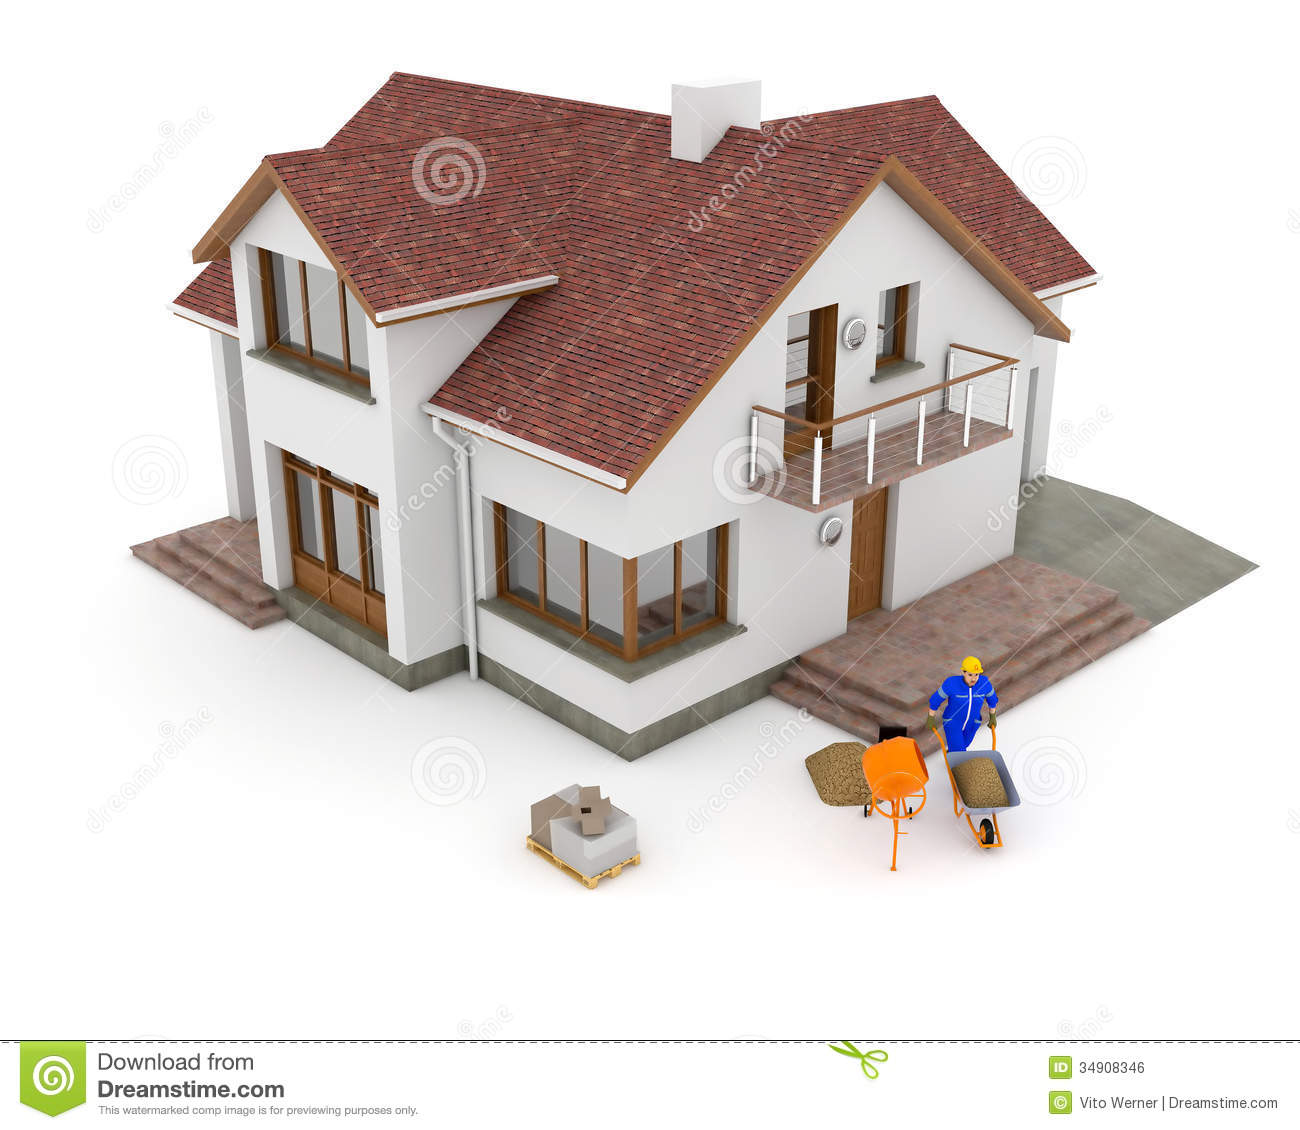 3d building renovation stock illustration image of for Build house online 3d free